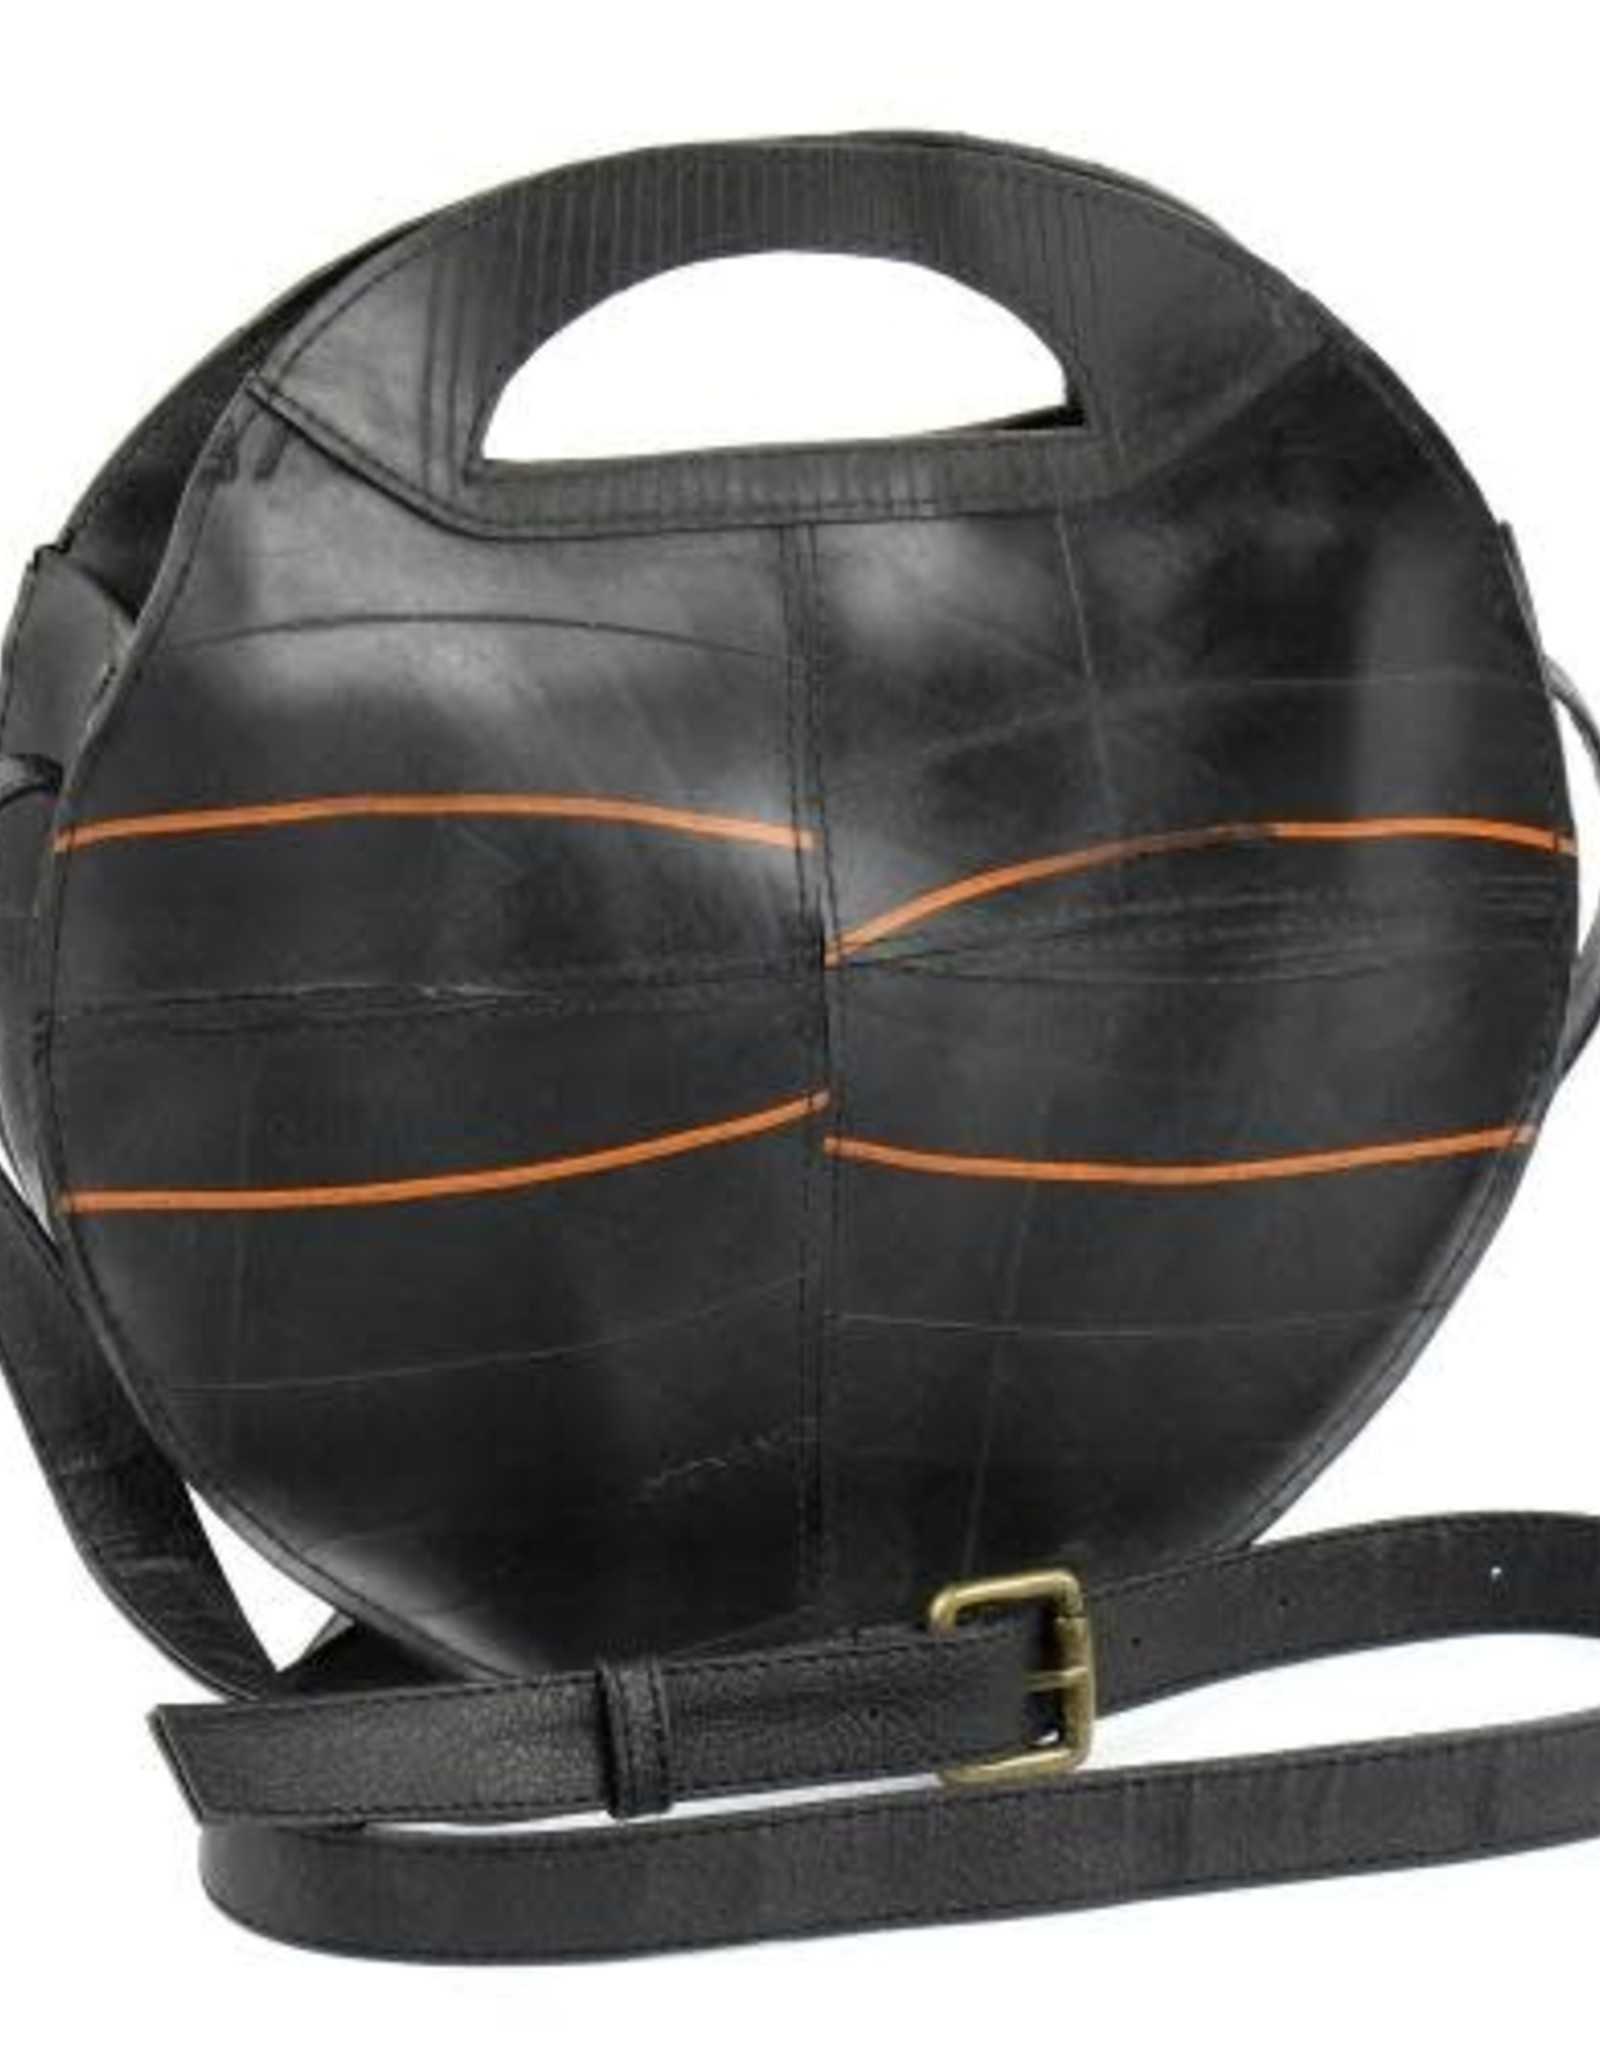 Global Crafts Bag, Shoulder Recycled Rubber Round